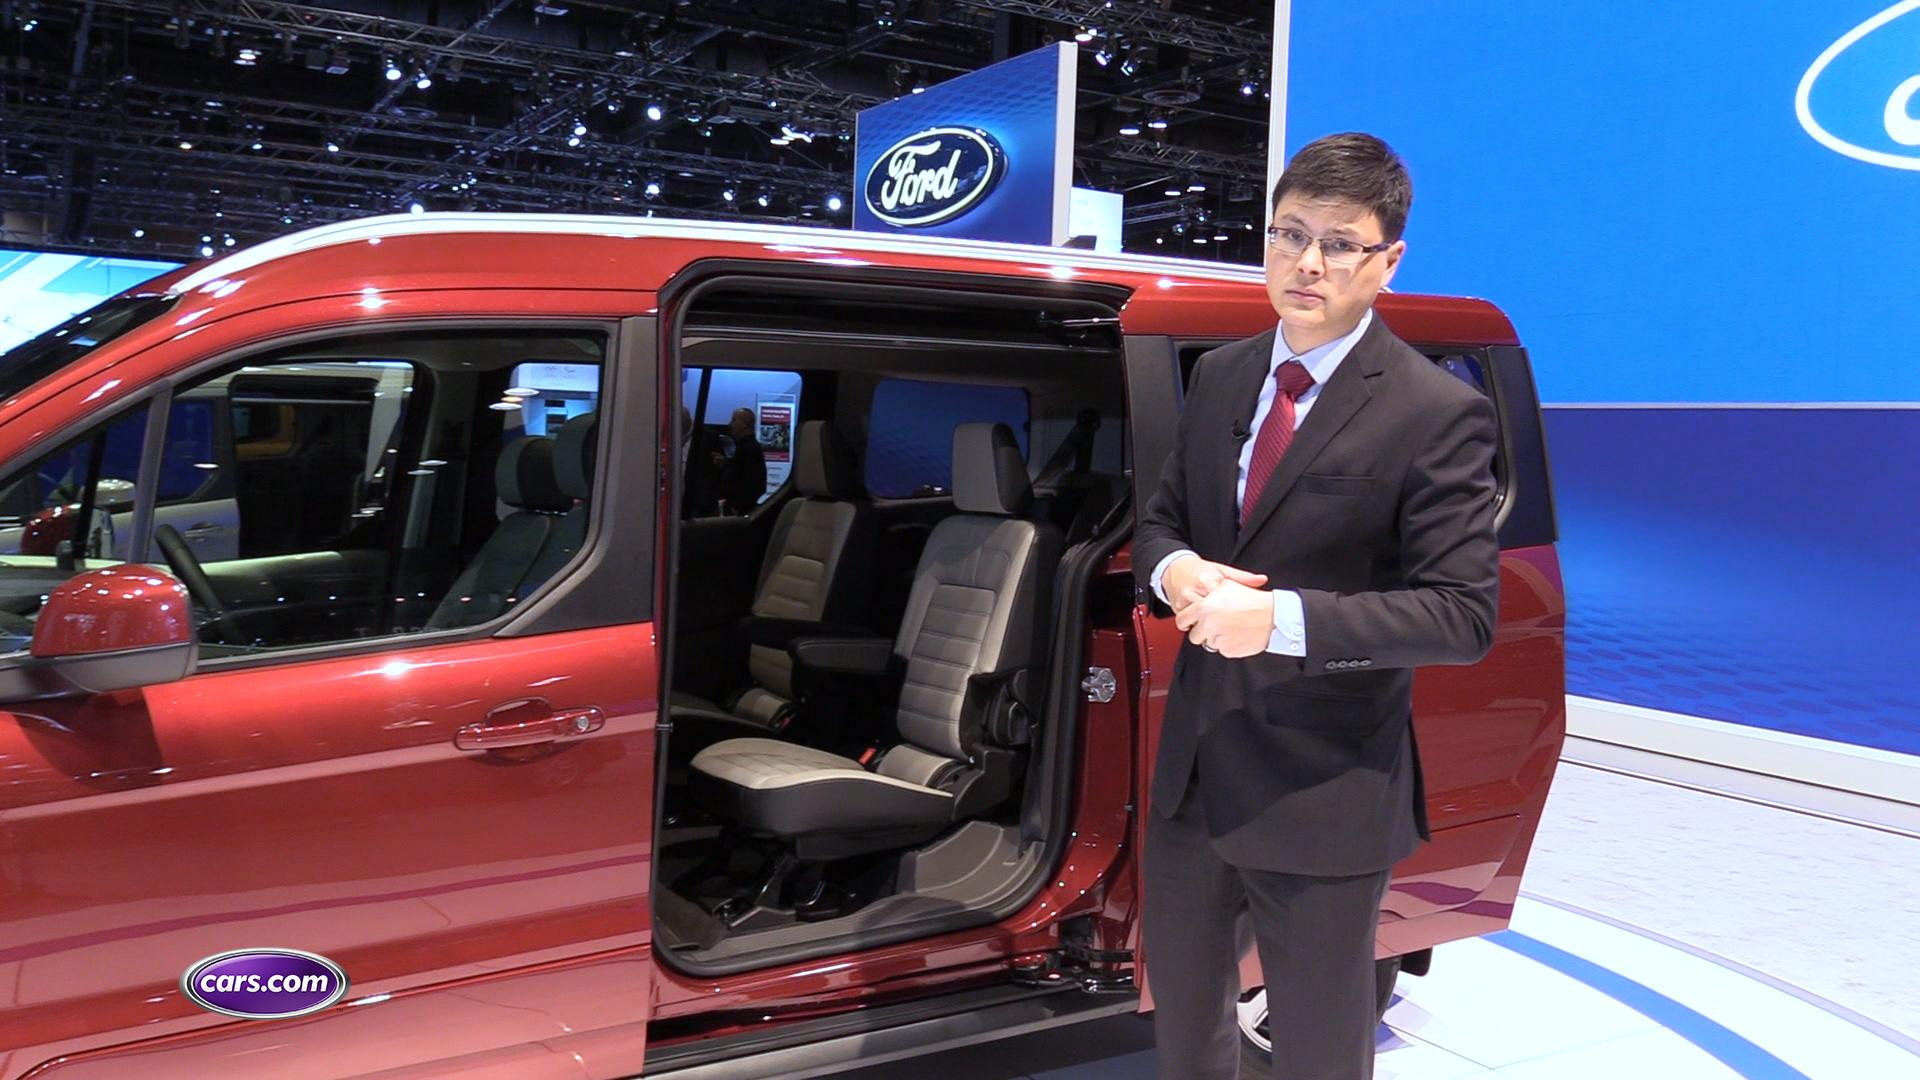 Video: 2019 Ford Transit Connect: First Look – Cars.com